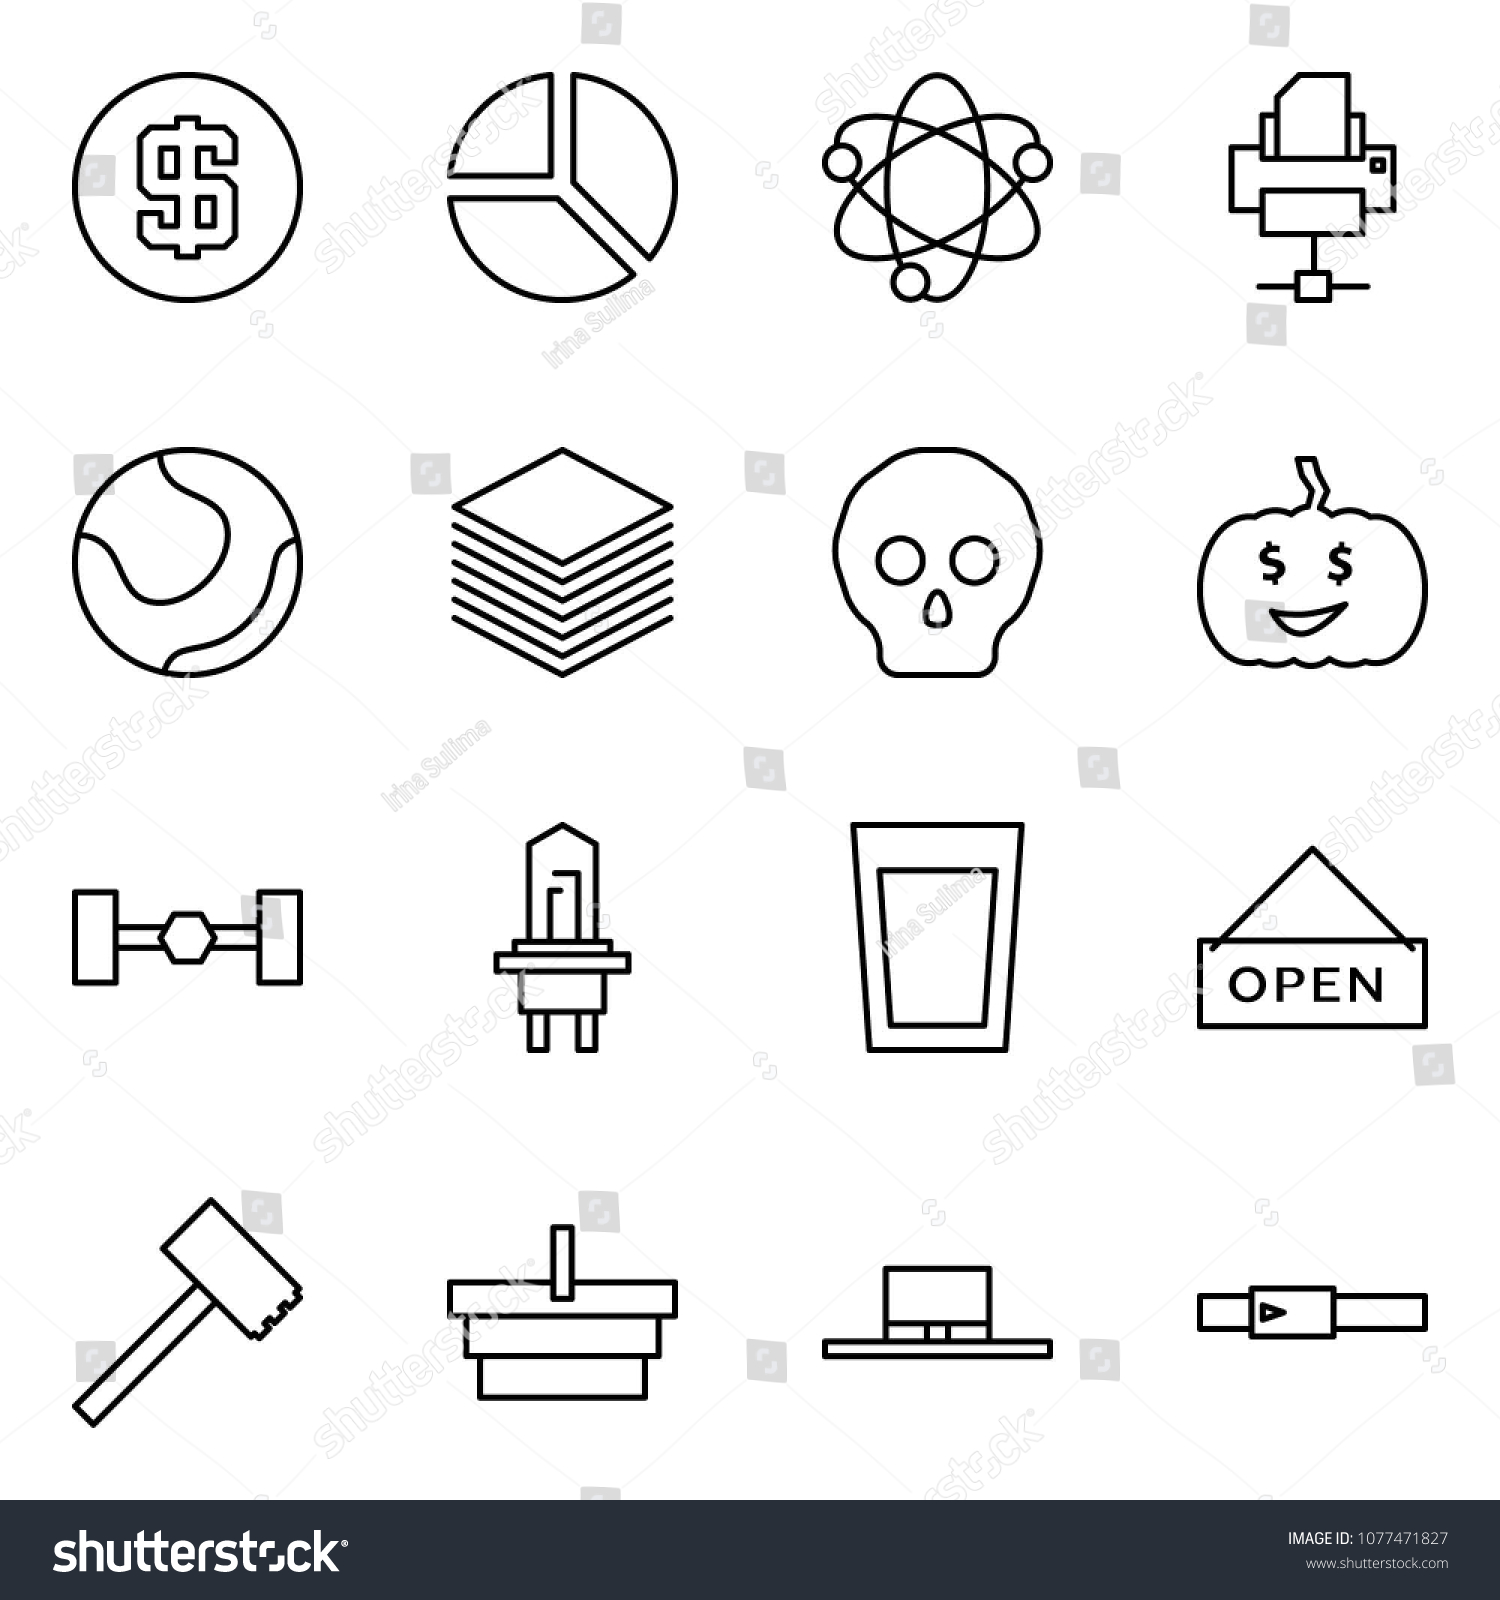 visio electrical diagram badlands 12000 winch wiring black hat network icon all data online icons 2d